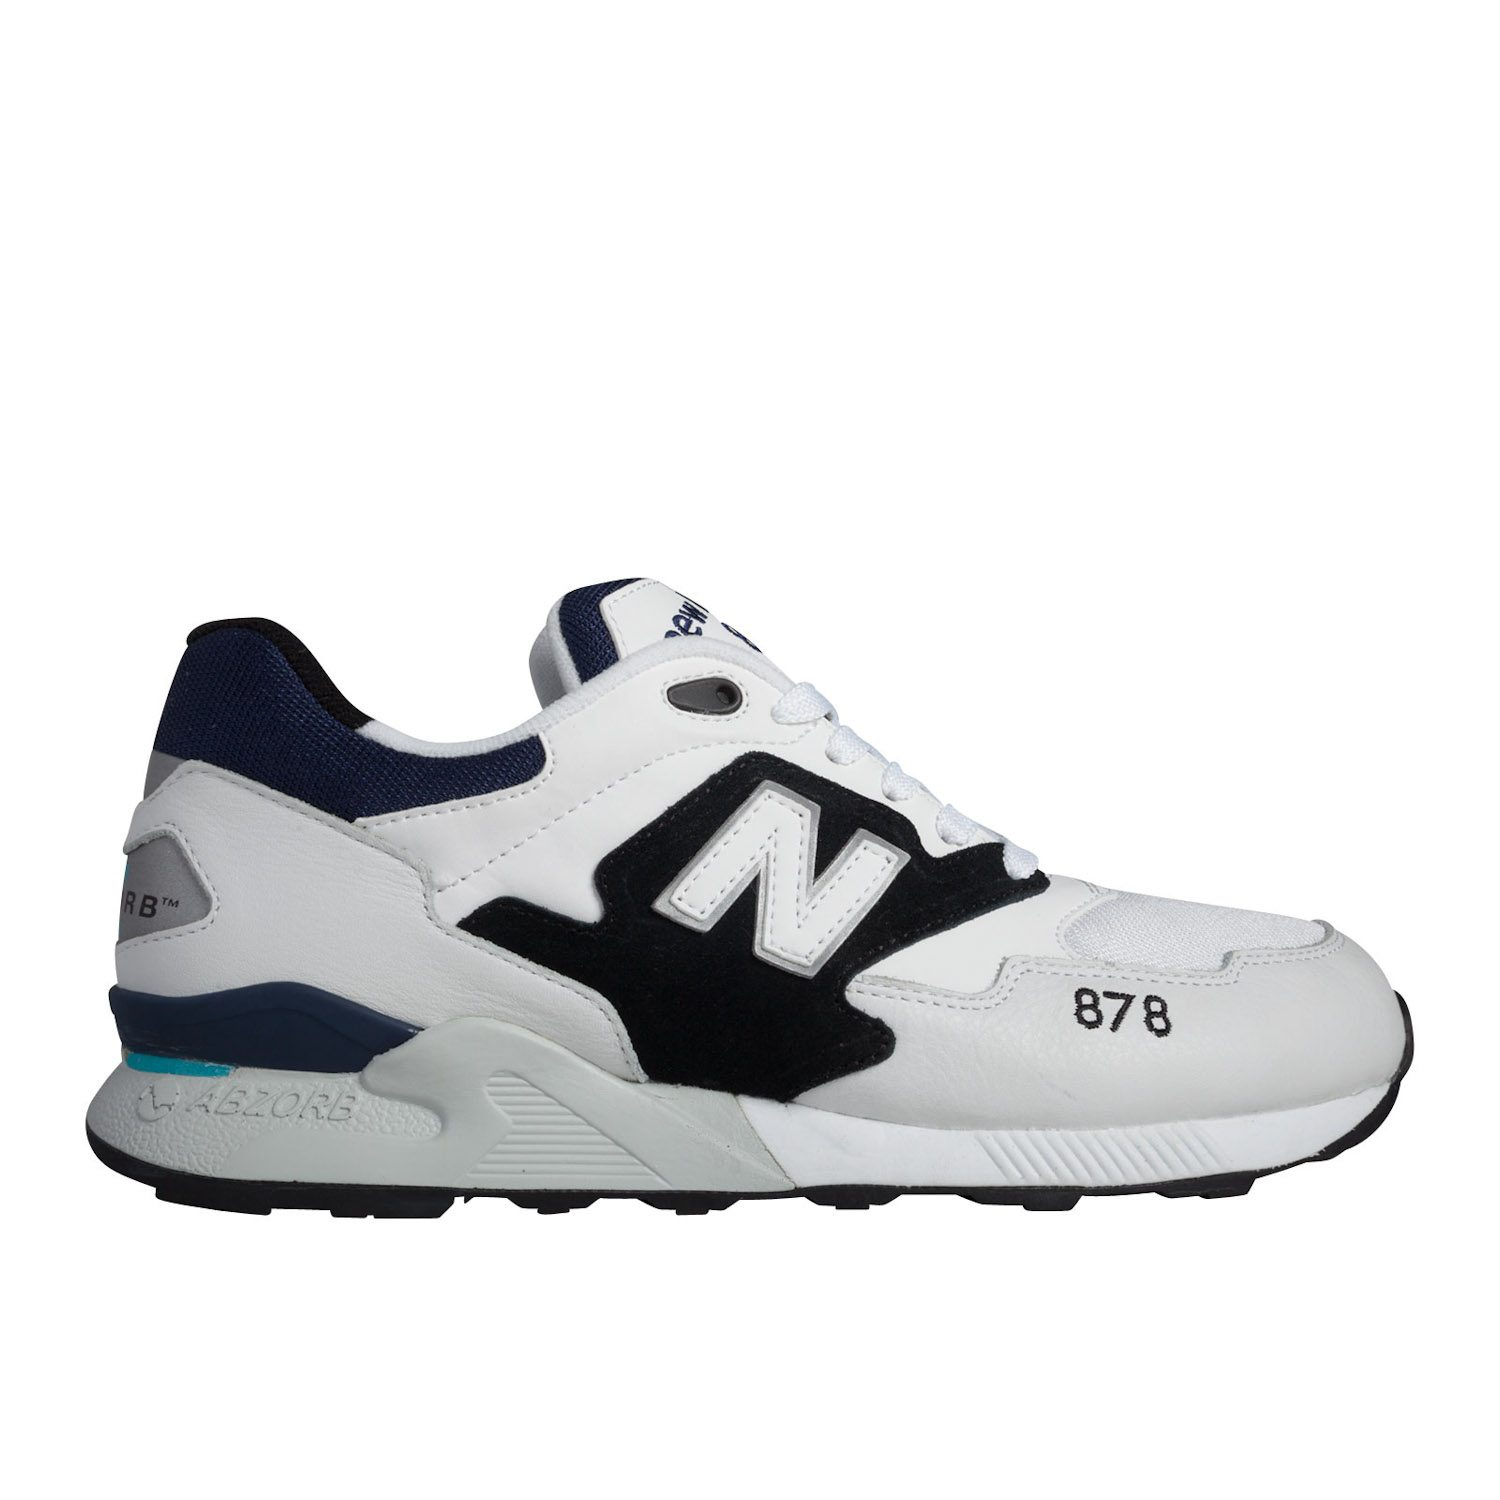 New Balance 878 90s Running Pack 2